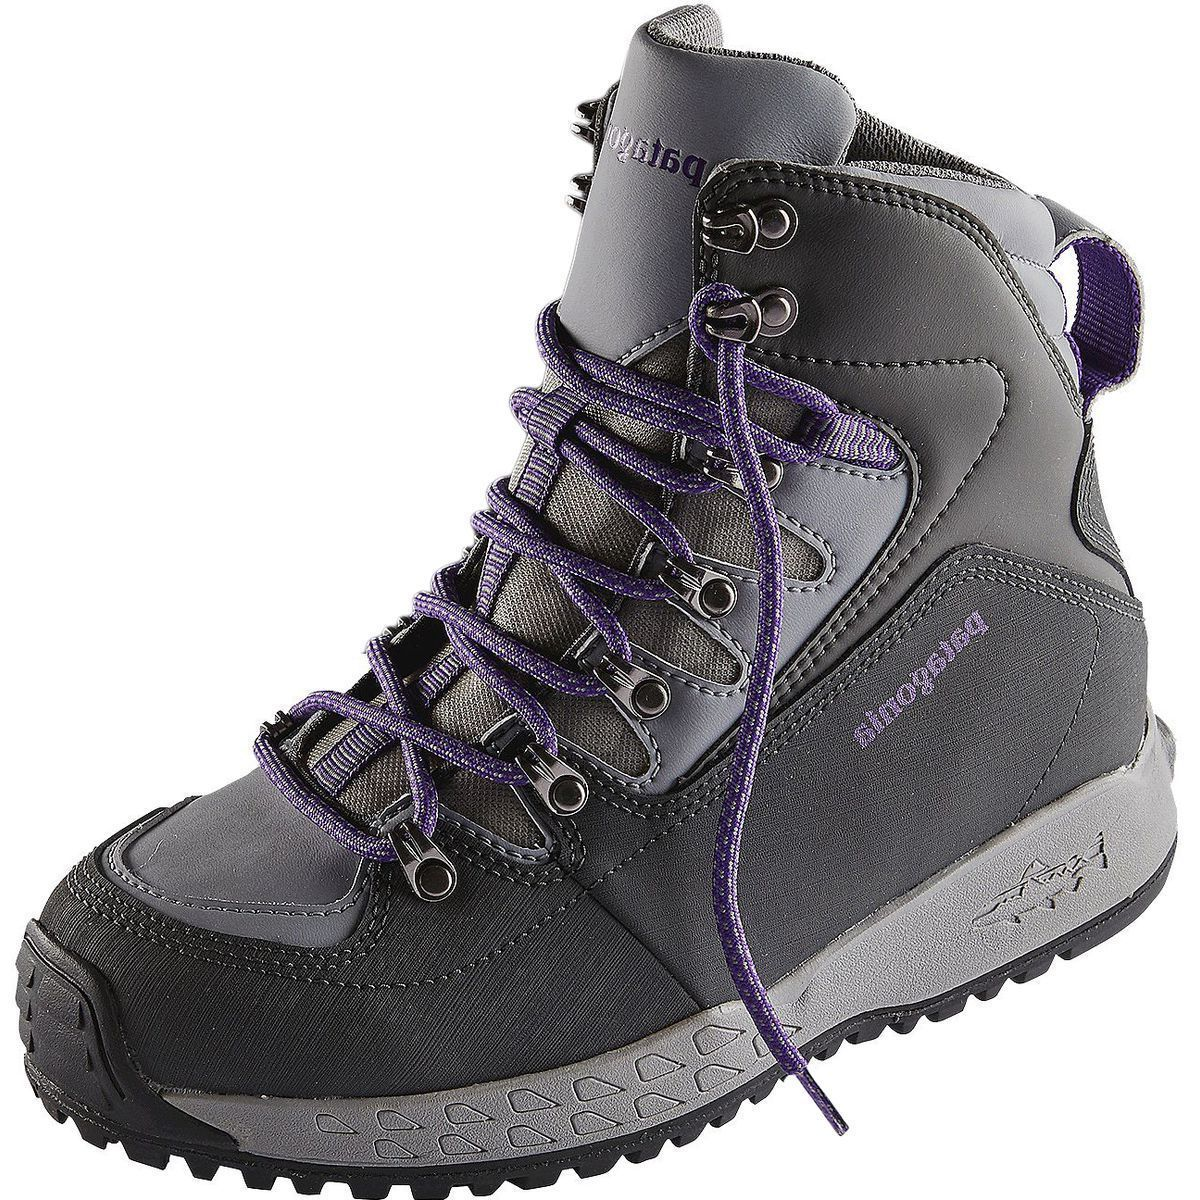 Patagonia Ultralight Sticky Wading Boots - Women's